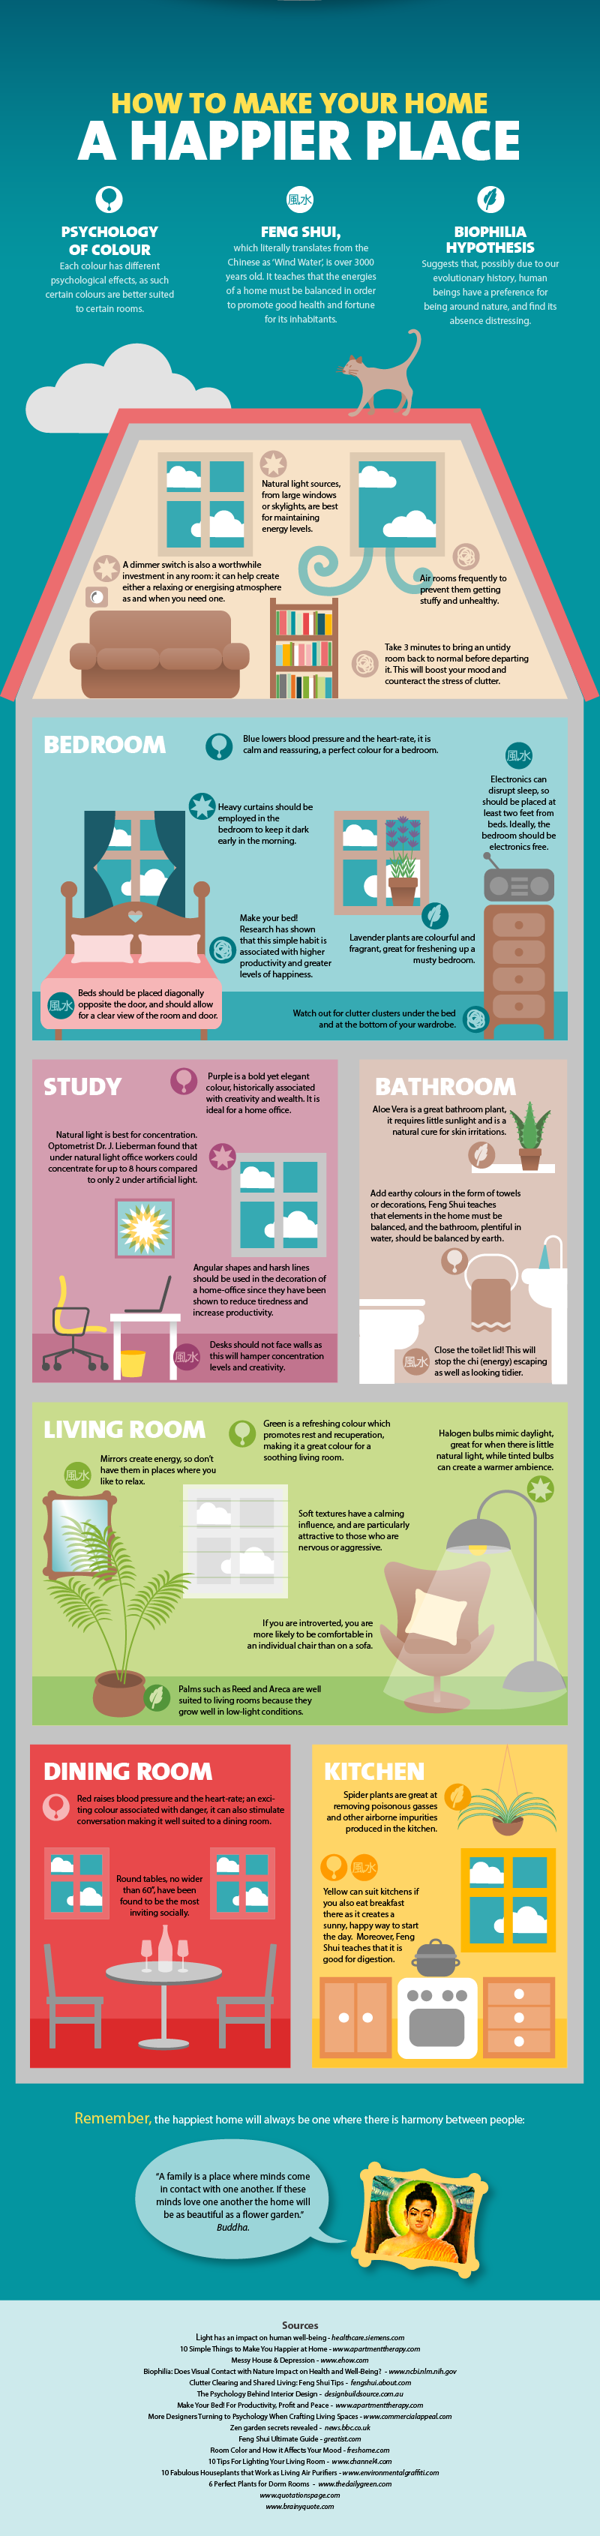 How-To-Make-Your-Home-A-Happier-Place